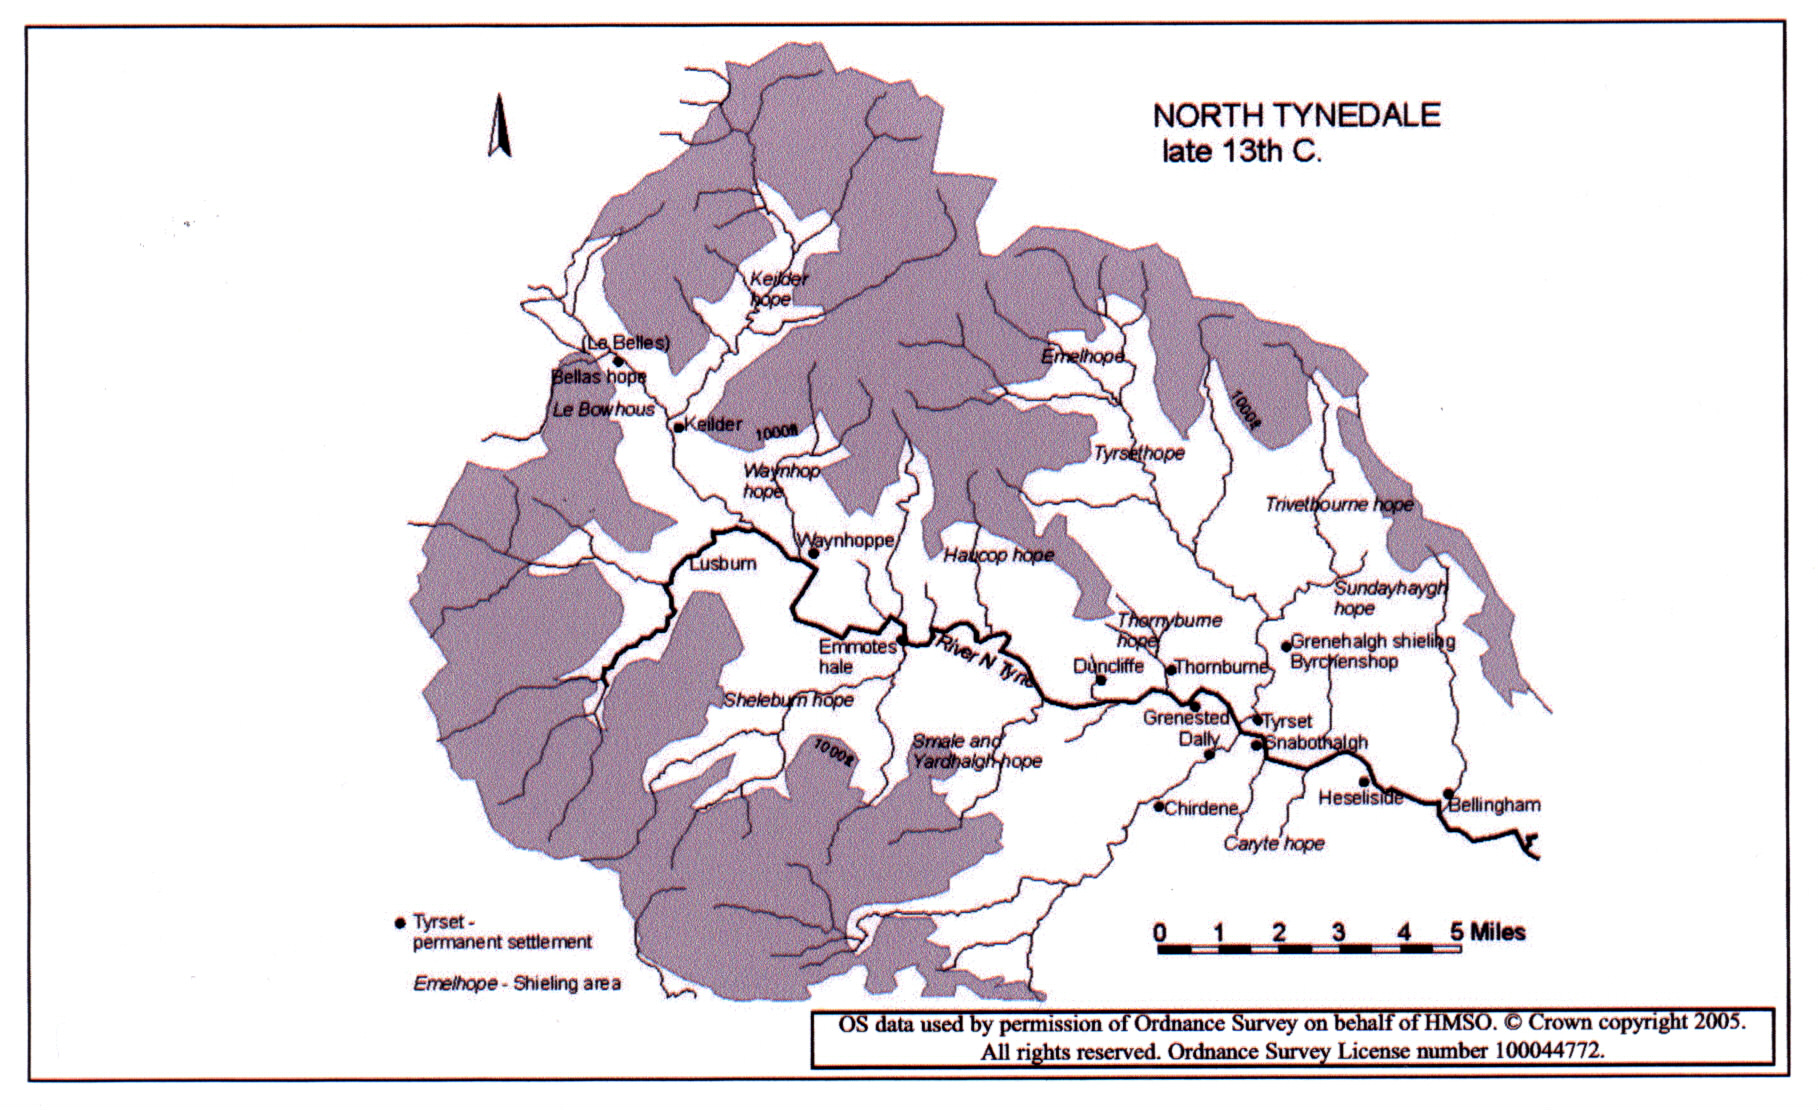 Late 13th. century settlement in upper North Tynedale, based on Harbottle and Newman (1973); with suggested alteration to position of medieval Waynhoppe. From Droving Research Report for Northumberland National Park Authority 2005